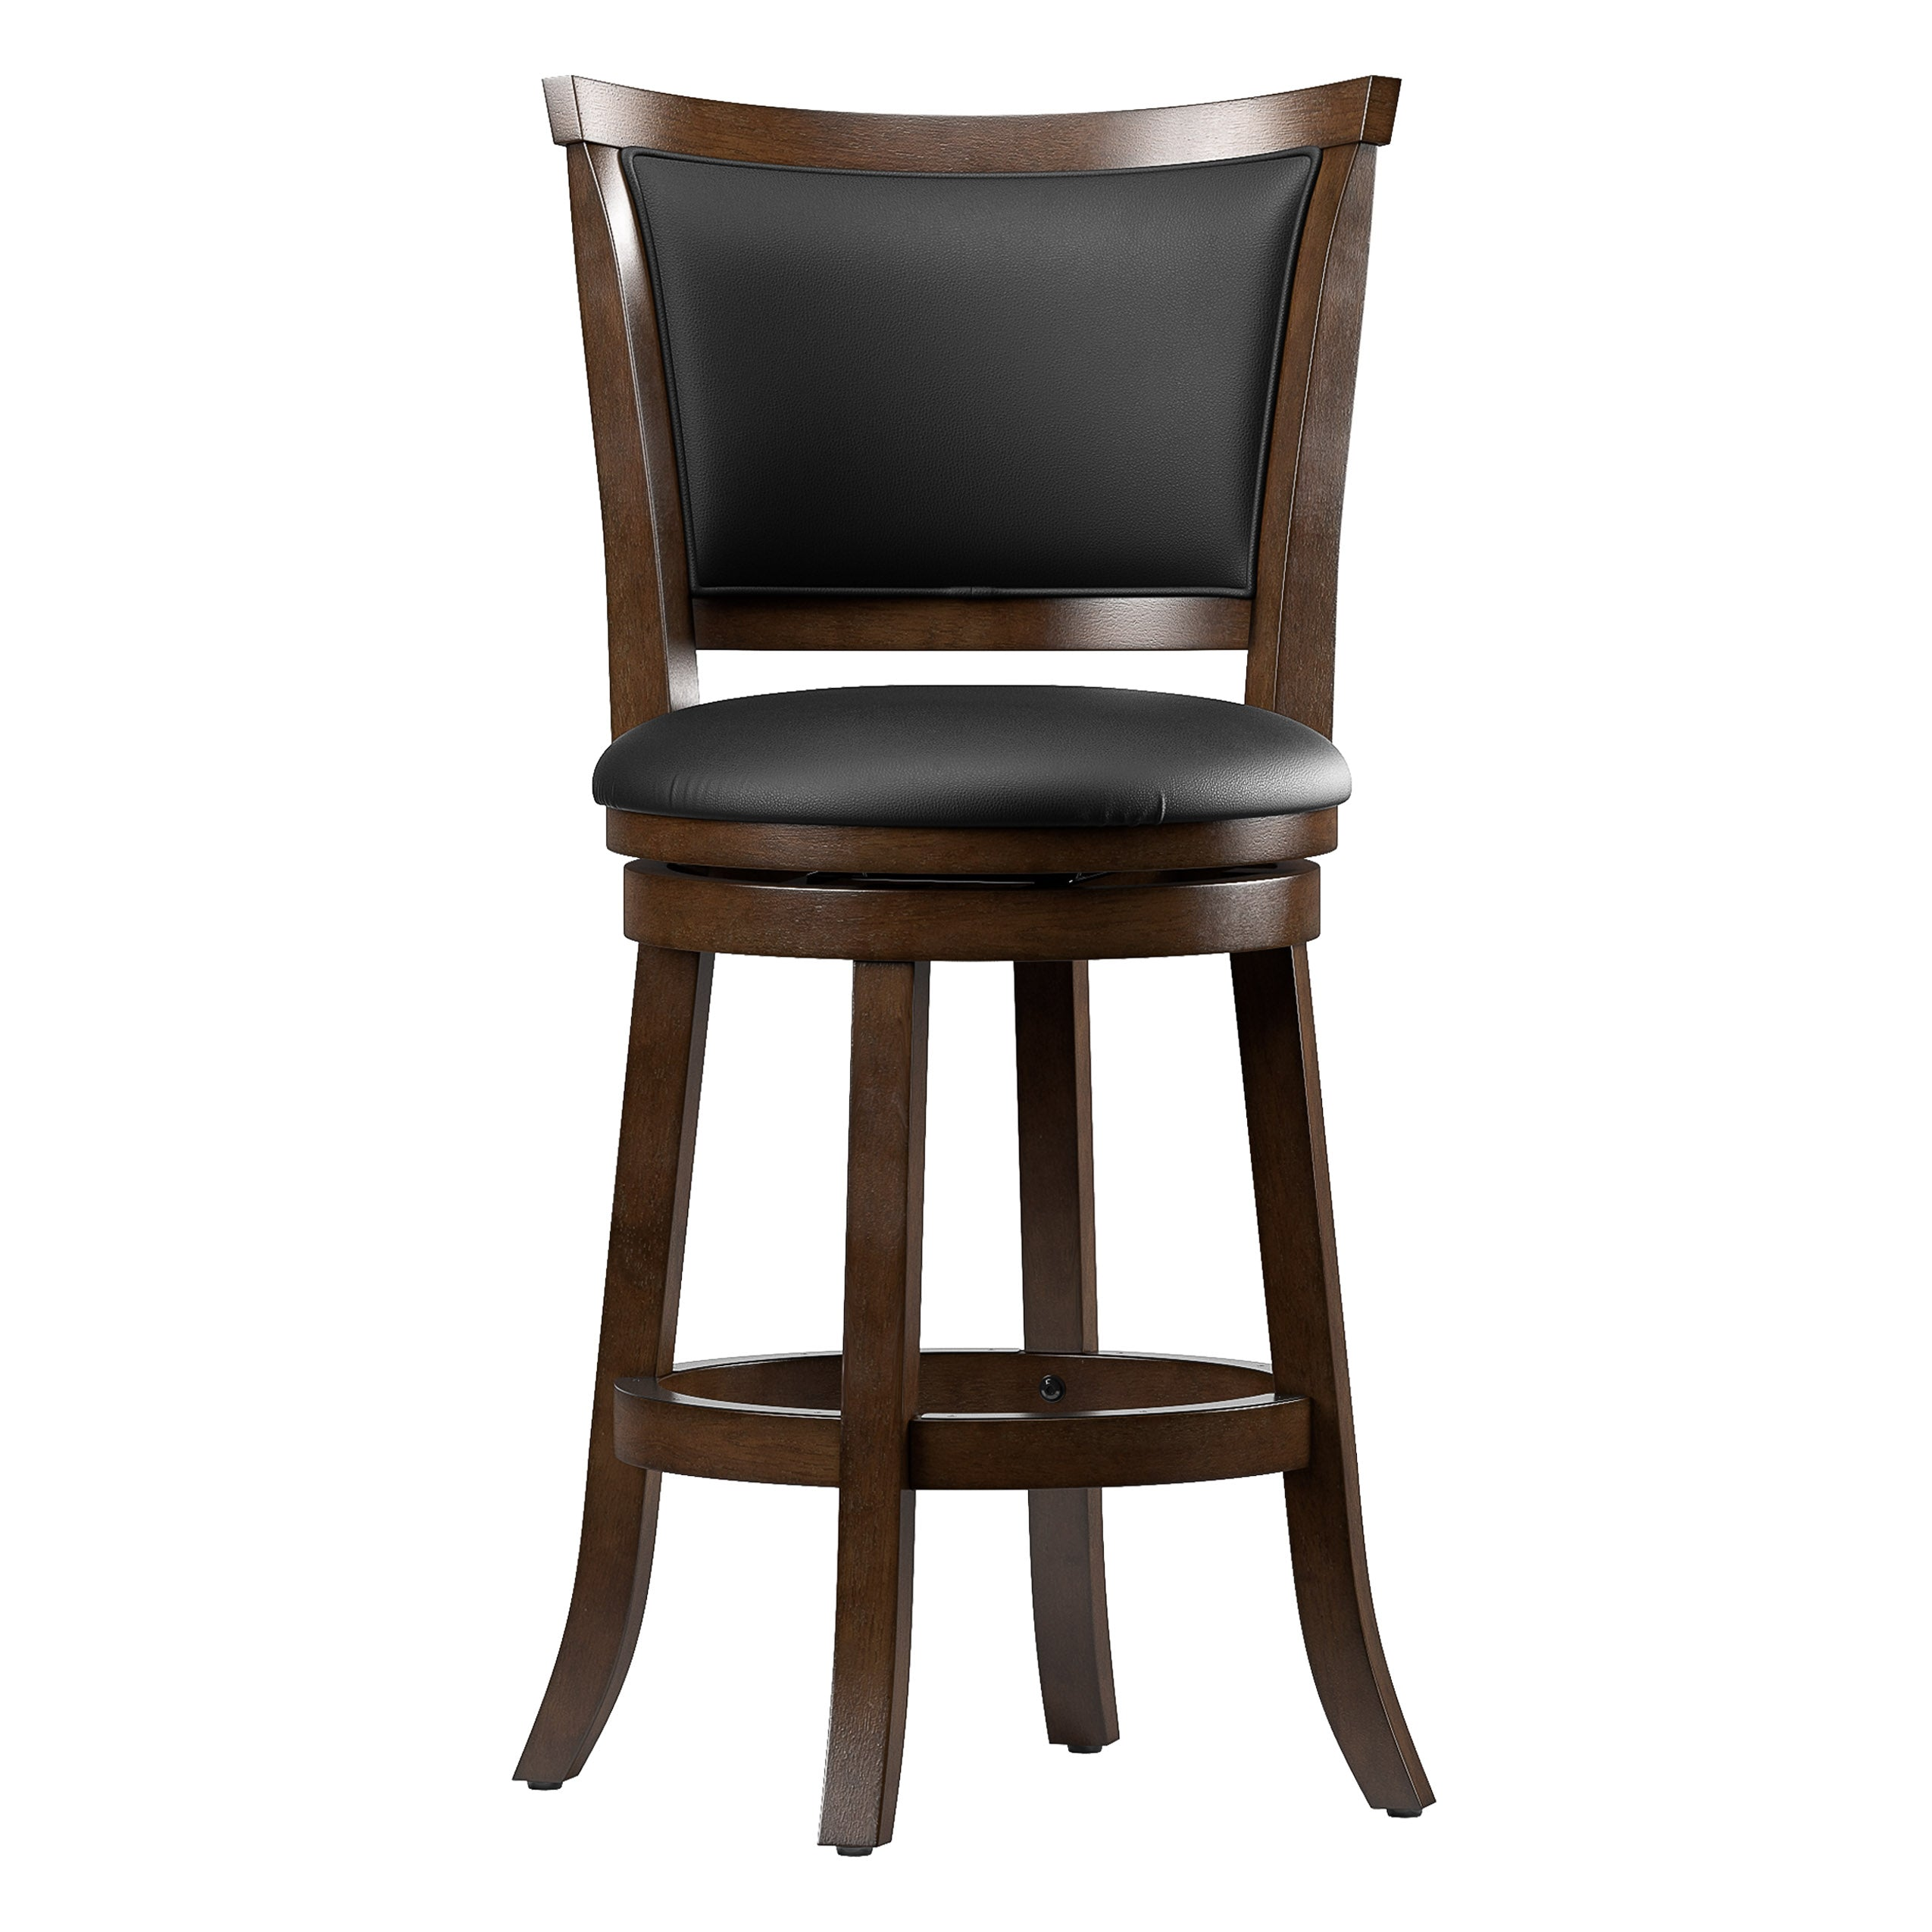 Awesome Counter Height Wood Bar Stools With Bonded Leather Seat And Backrest Set Of 2 Inzonedesignstudio Interior Chair Design Inzonedesignstudiocom